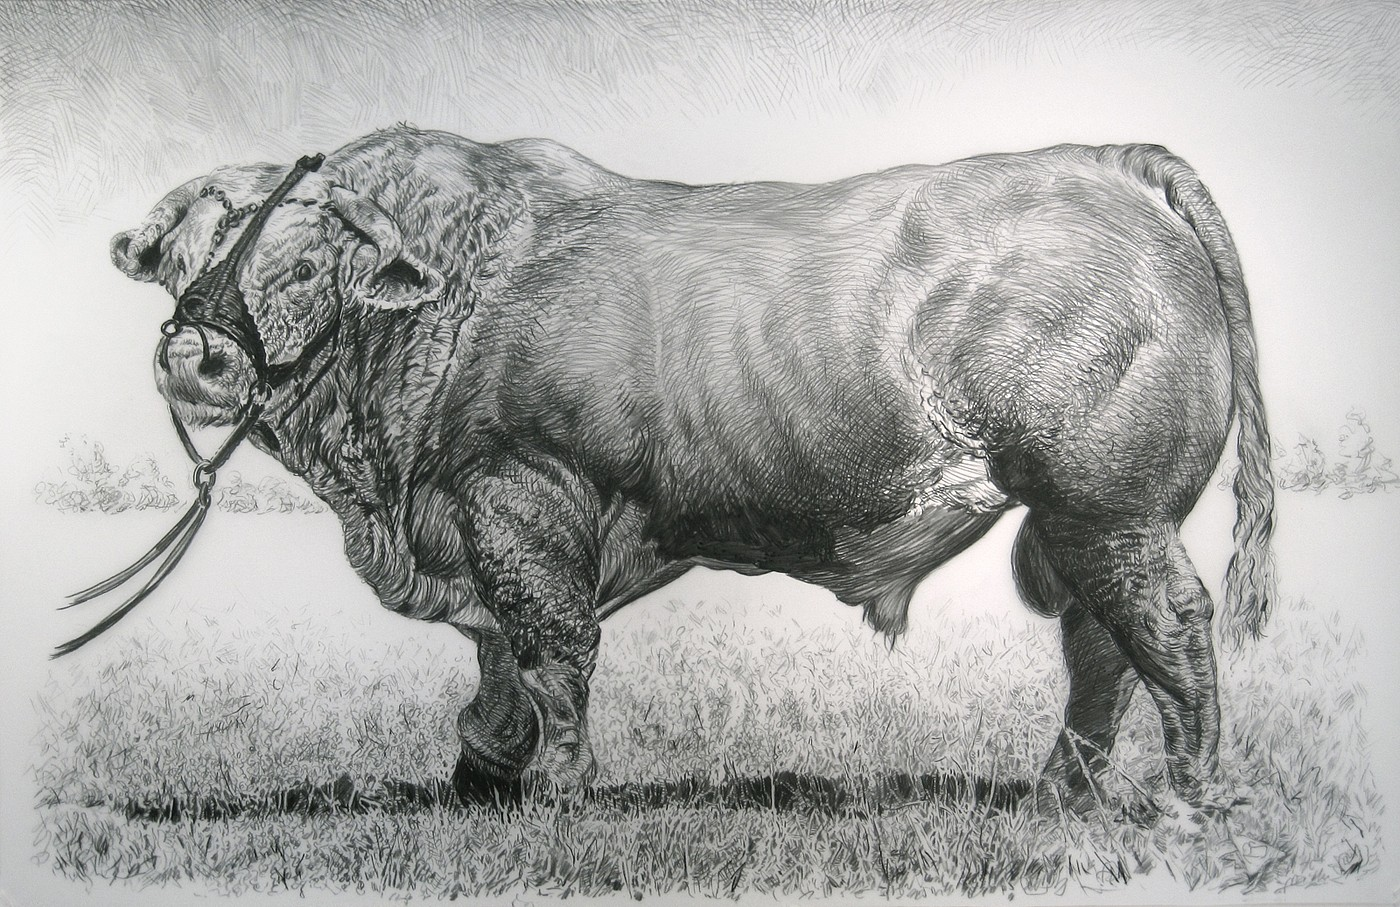 Rick Shaefer   Bull , 2014  shaef025   charcoal on vellum, 45 x 65 inches